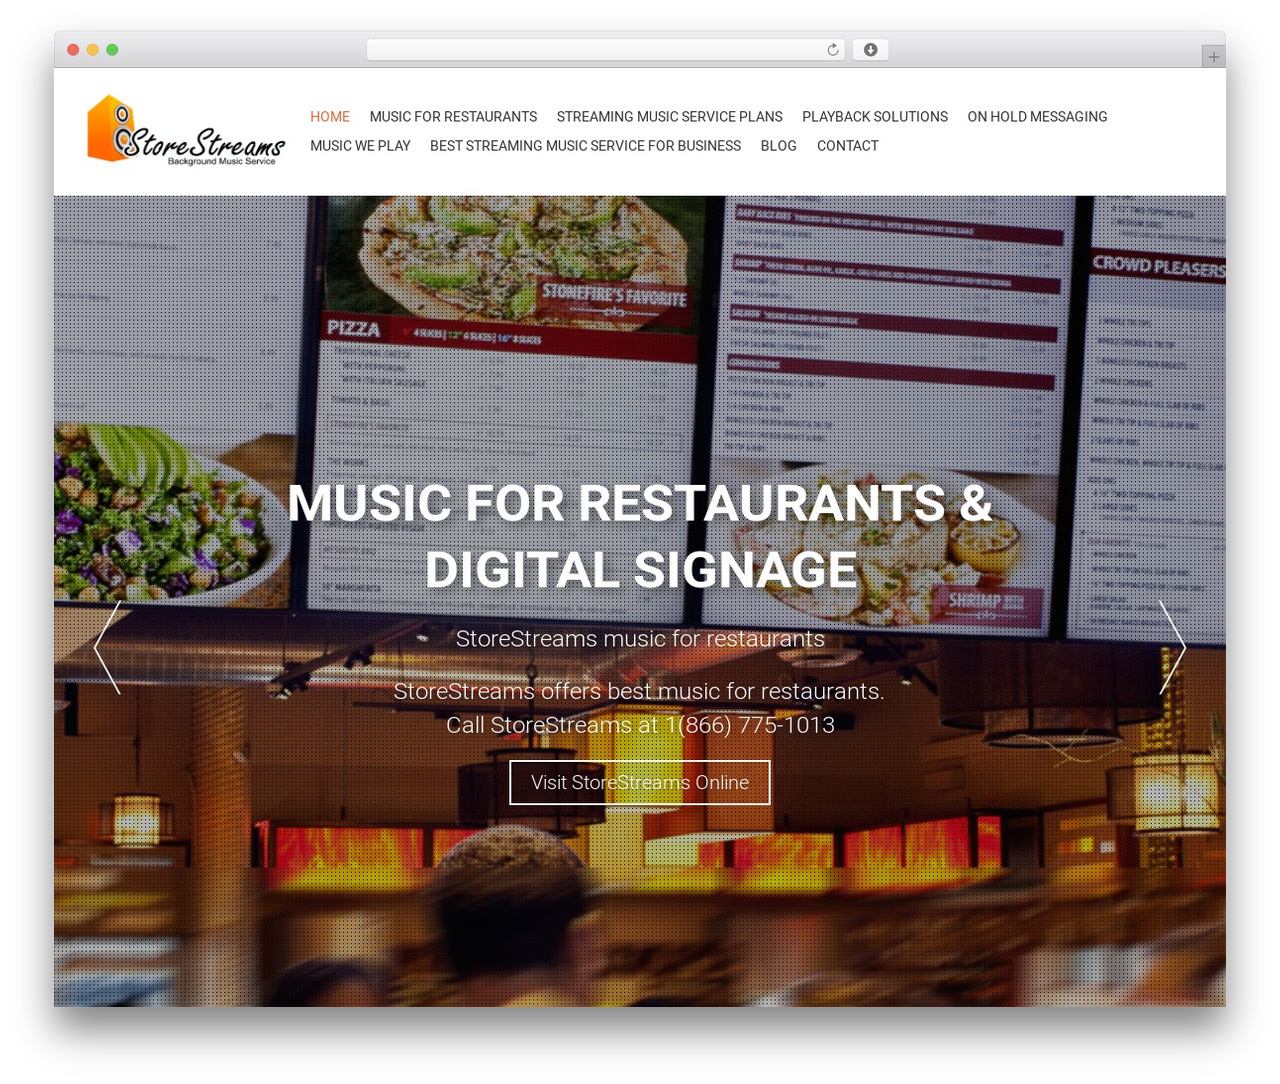 AccessPress Parallax WordPress shopping theme - restaurantmusicservice.com